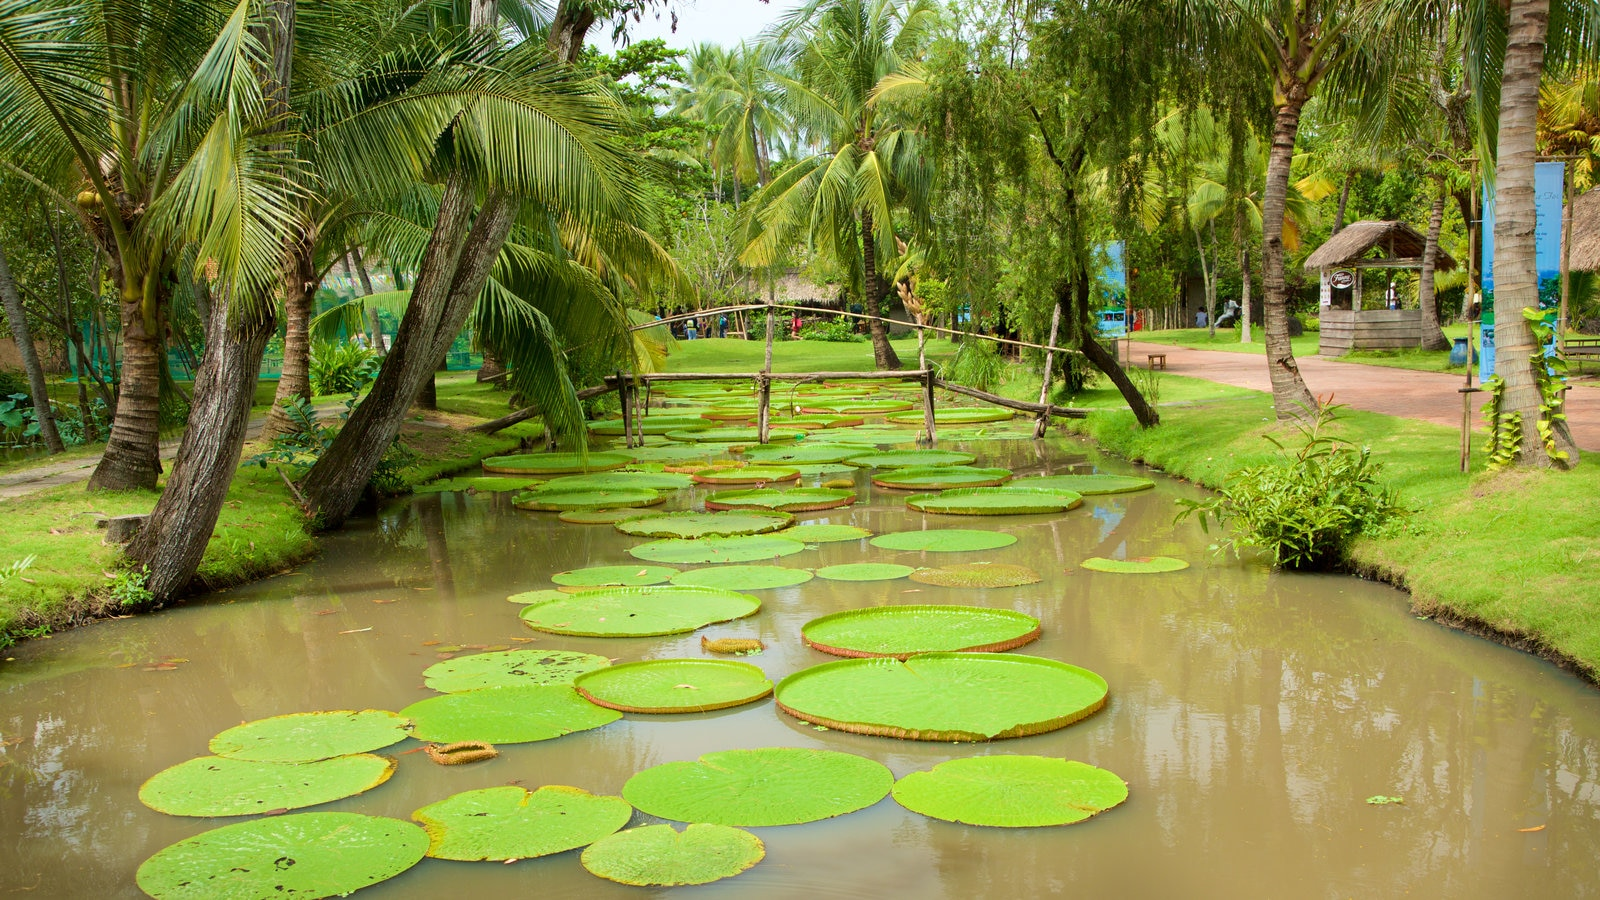 Gardens parks pictures view images of ho chi minh city for Garden pool hanoi